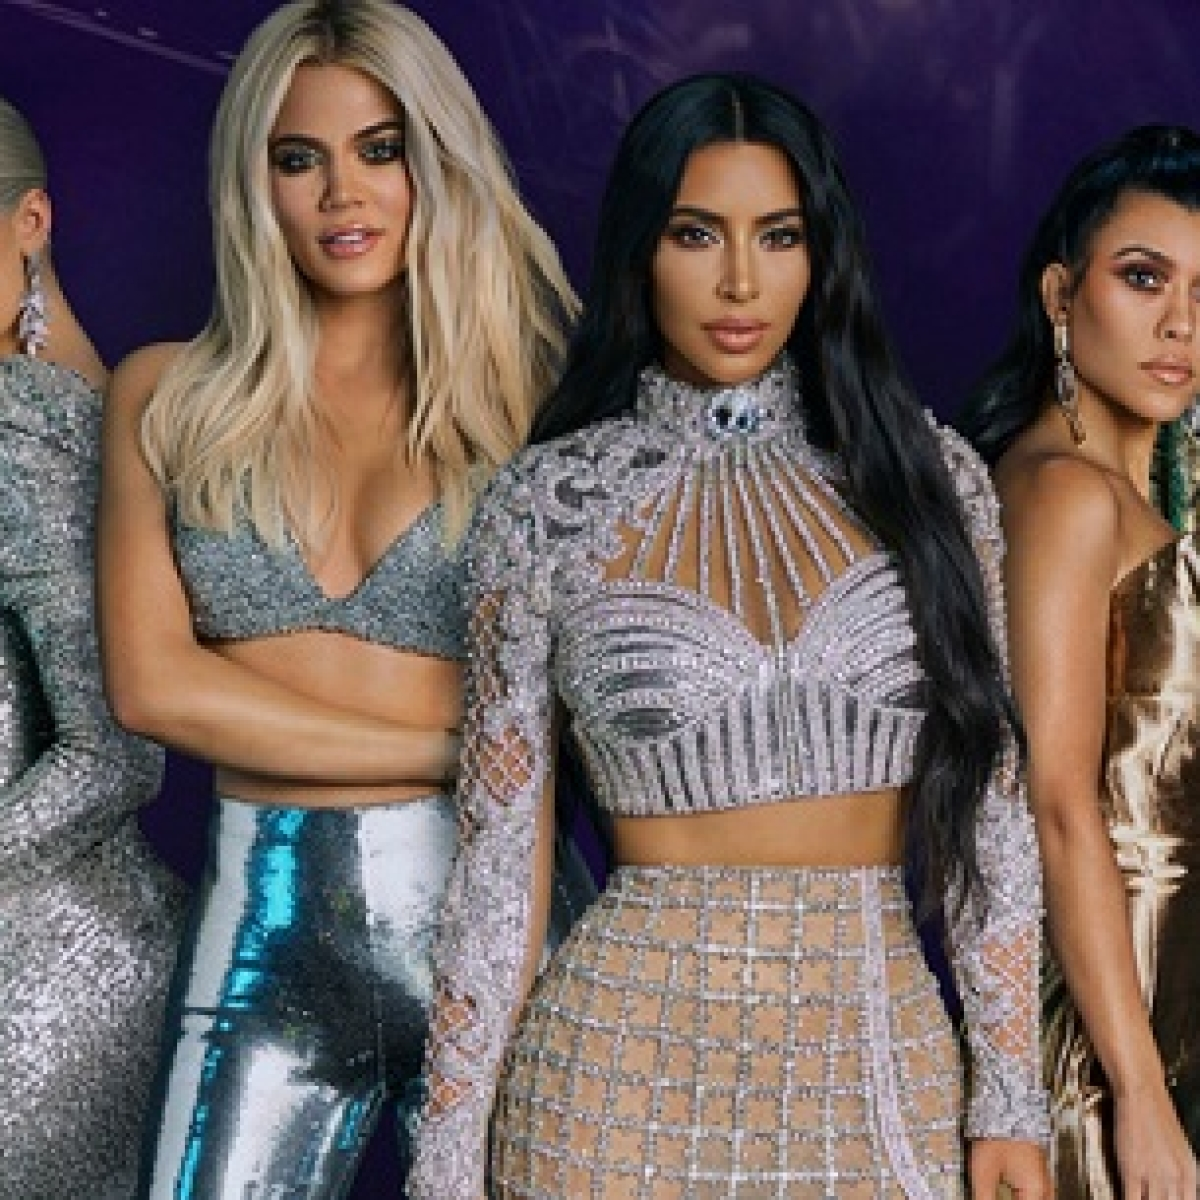 'Keeping Up With the Kardashians' reunion special to air next week